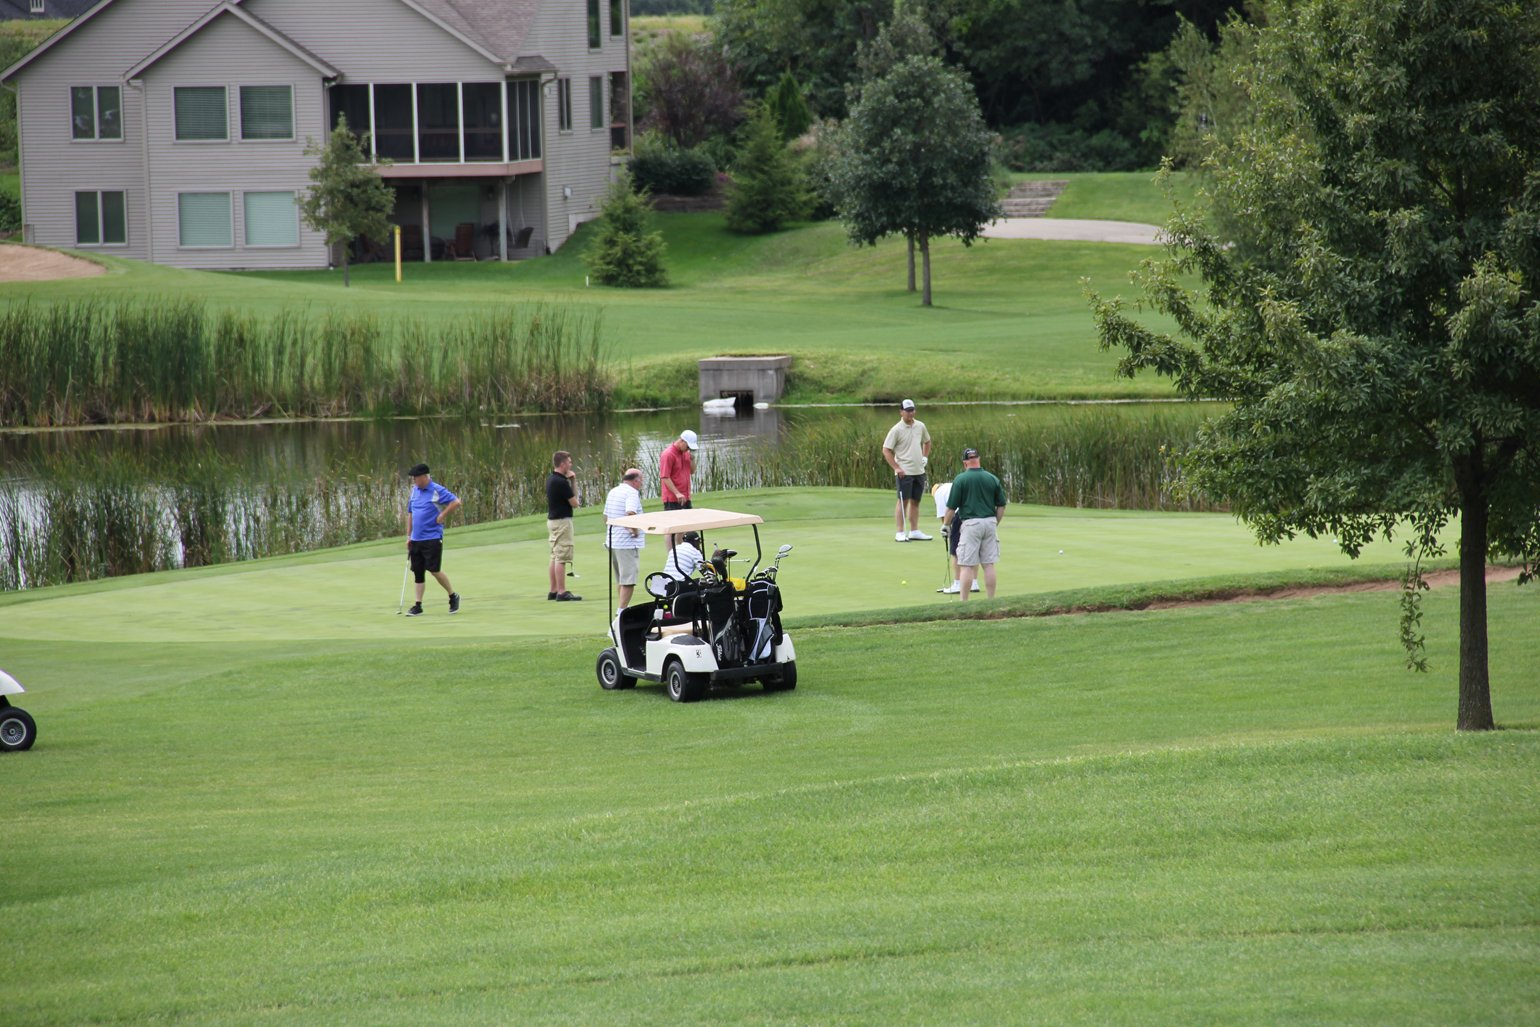 Swinging into Healthcare Charity Classic